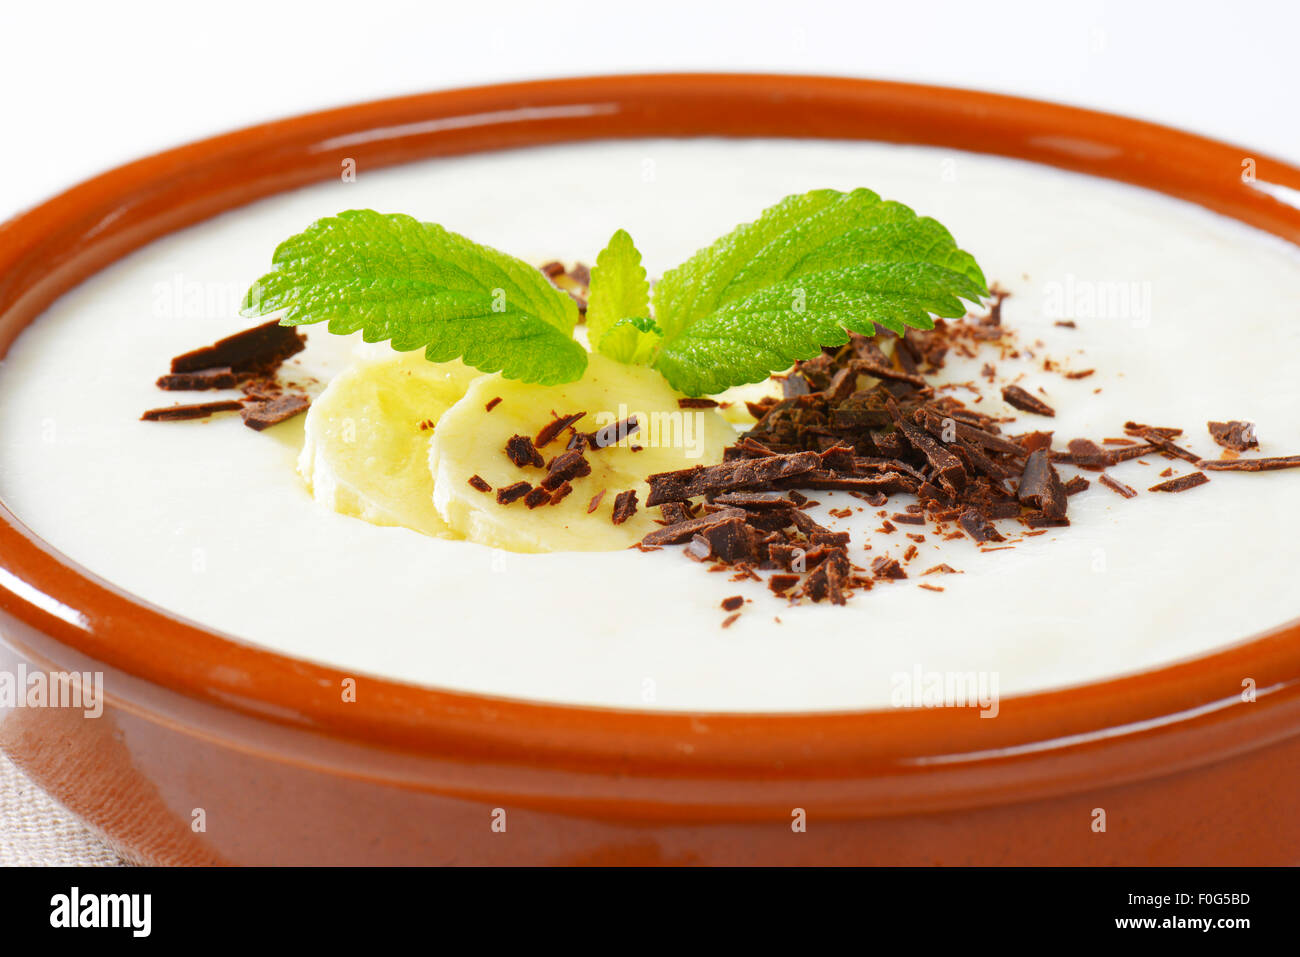 Bowl of smooth milk pudding with sliced banana and grated chocolate - Stock Image